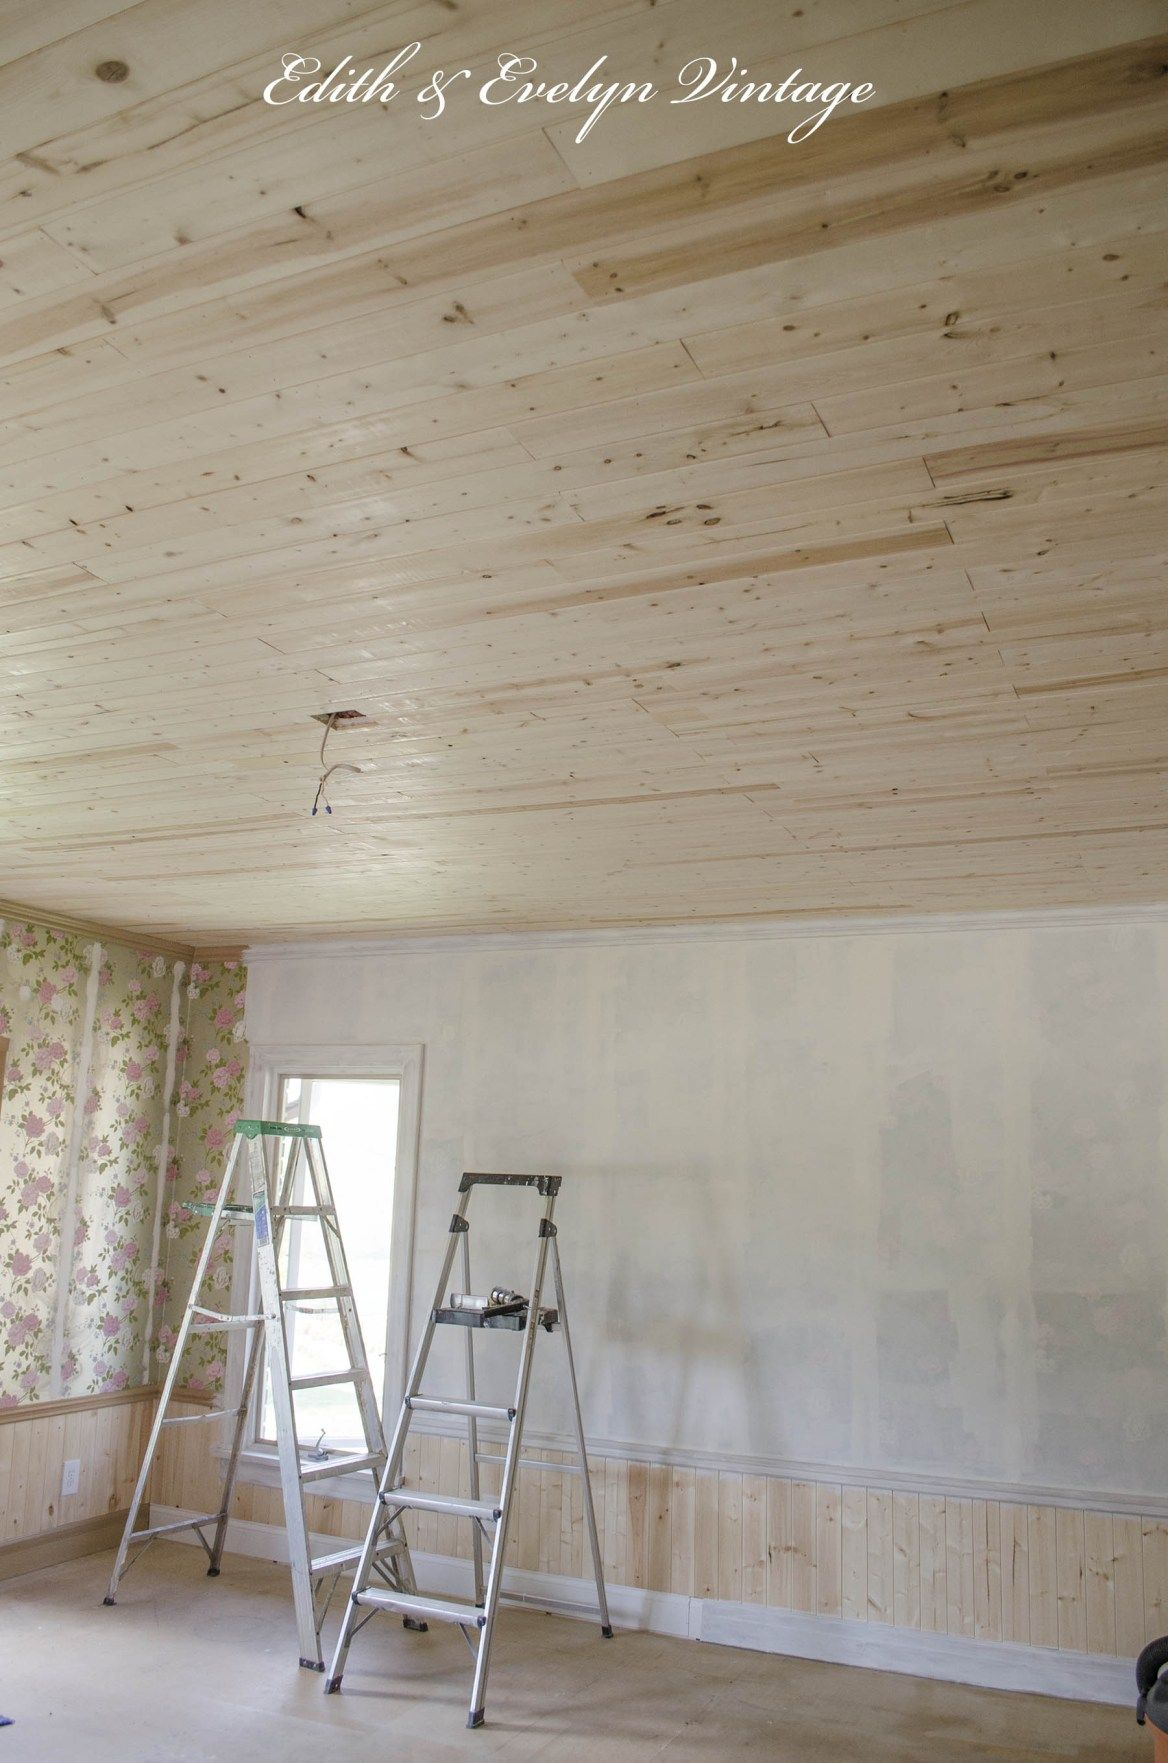 How To Plank A Popcorn Ceiling Edith Evelyn Vintage Www Edithandevelynvintage Com Popcorn Ceiling Wood Plank Ceiling Basement Remodeling